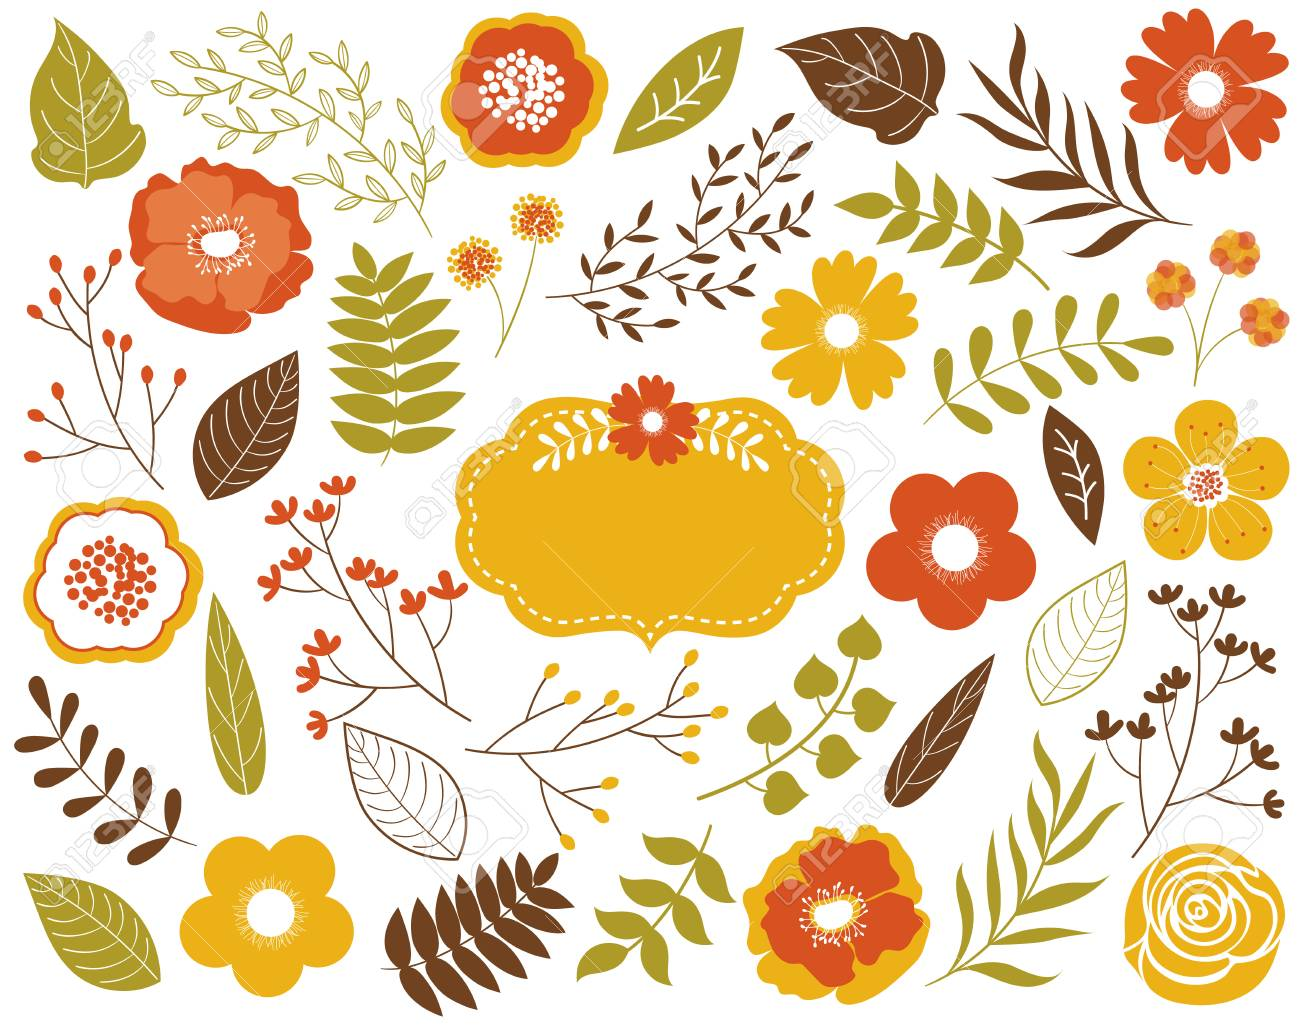 vector autumn floral set with leaves, flowers, berries and frame... royalty  free cliparts, vectors, and stock illustration. image 81054110.  123rf